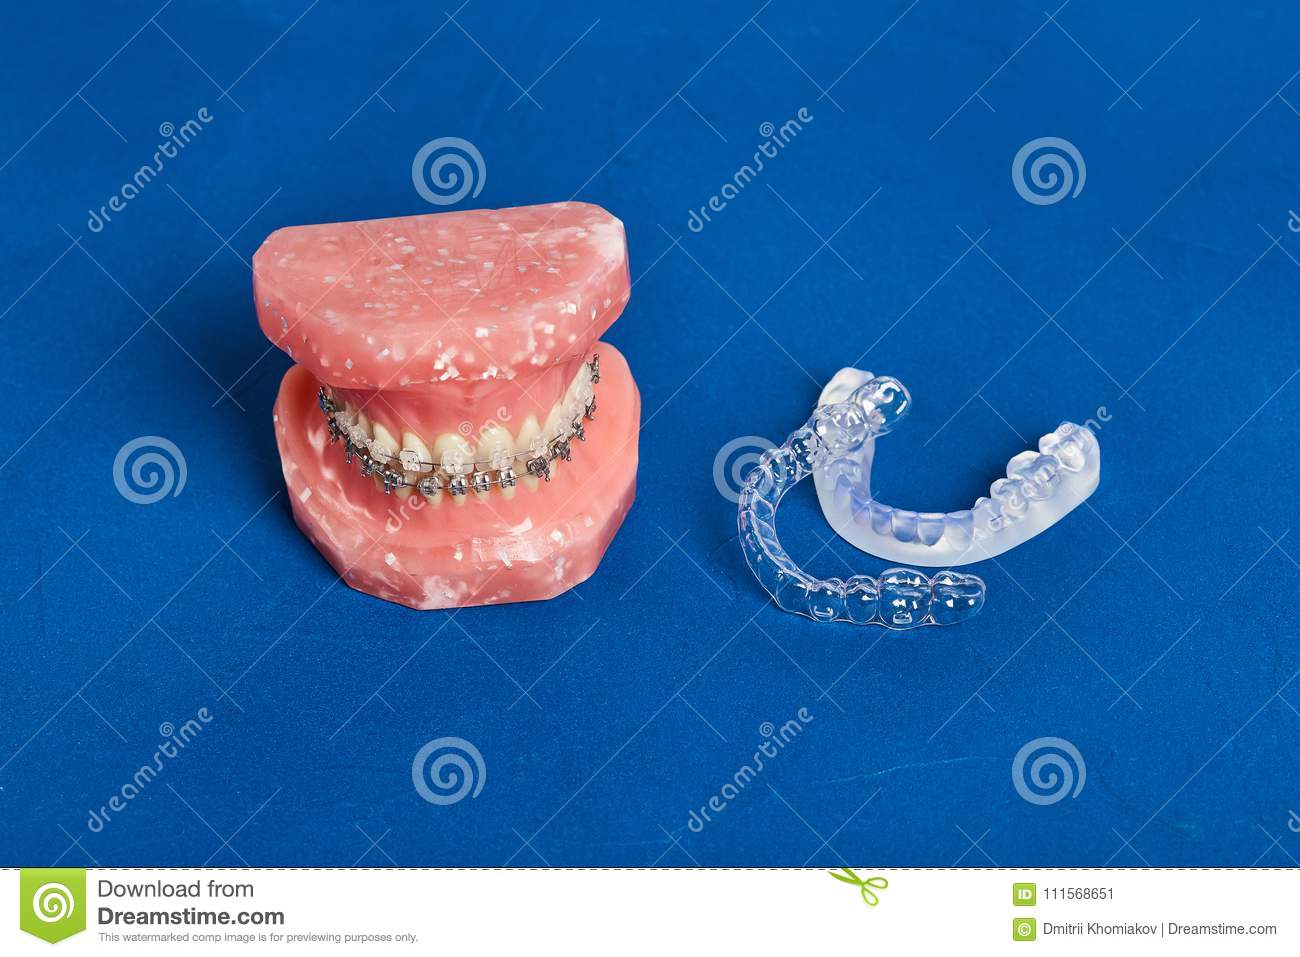 Human Jaw Or Teeth Model With Metal Wired Dental Braces Stock Image ...